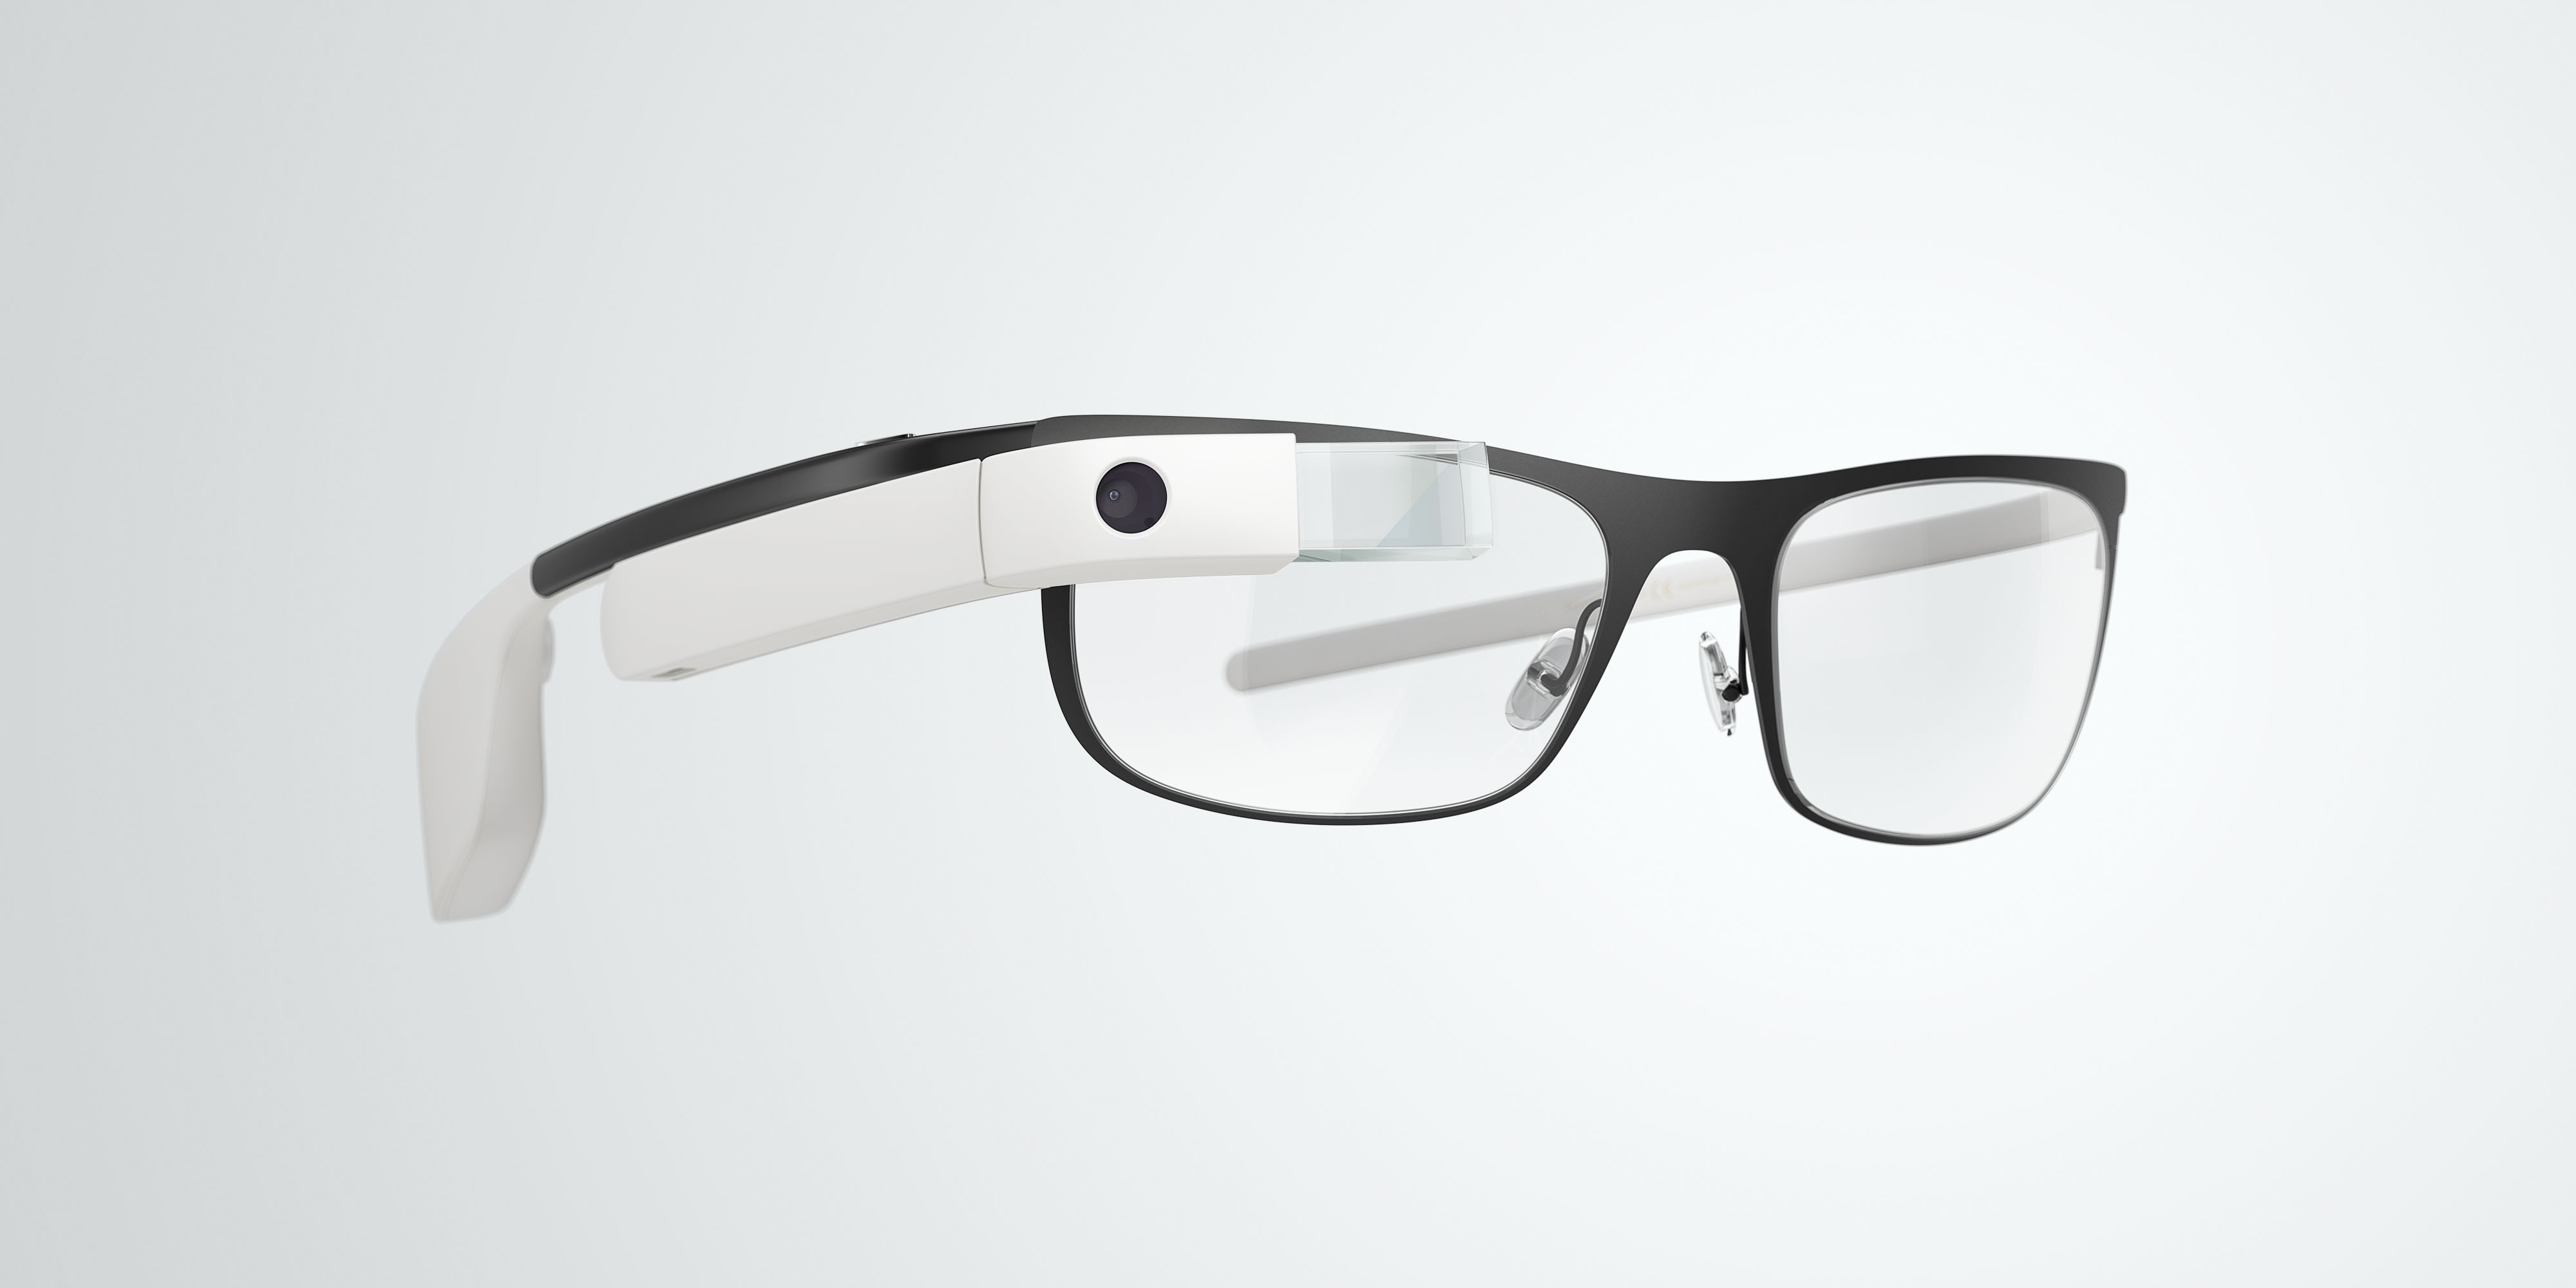 The google project glass